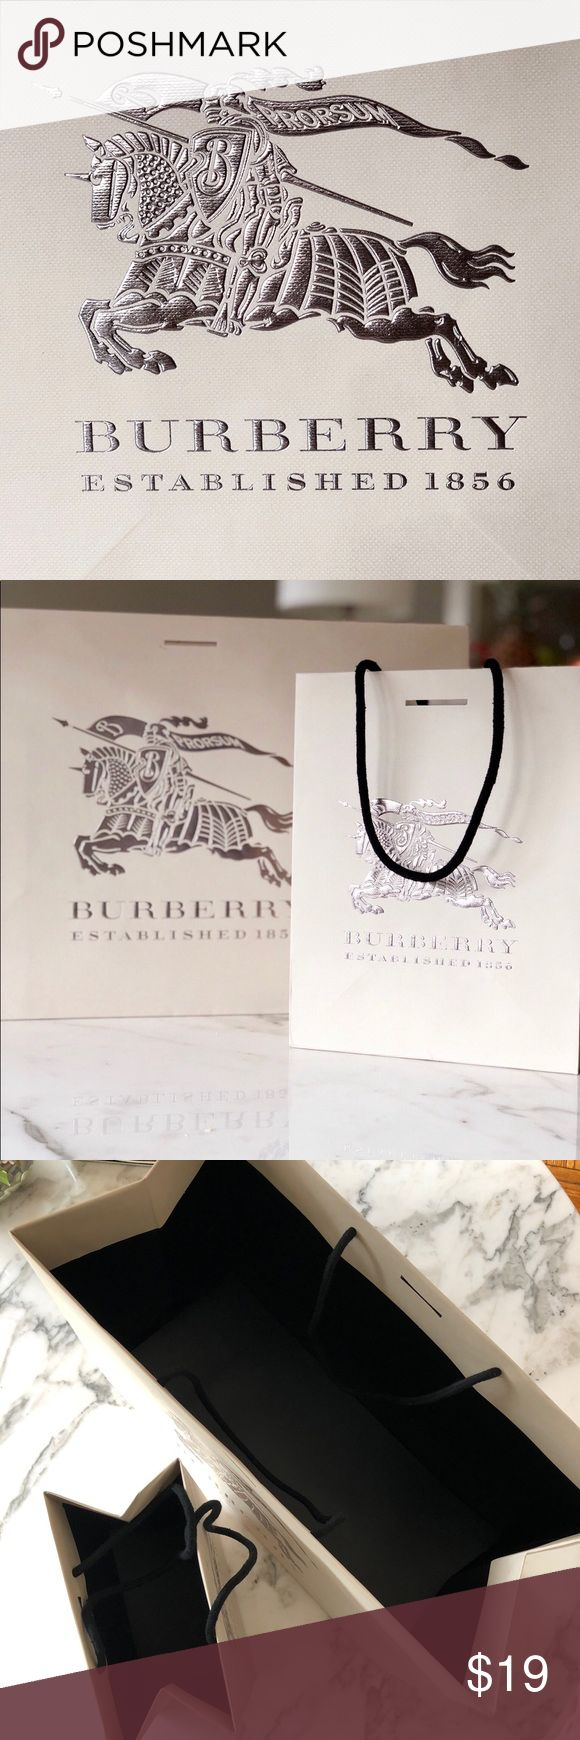 Burberry Authentic Boutique Bags Set of 2 Burberry Shopping Product Bags   No stains, holes, or other damage.   Please ask any questions before you buy. Always open to reasonable offers. Thanks for looking. 😘✌️ Bundle&Save 15% off on 2+ items Burberry Makeup